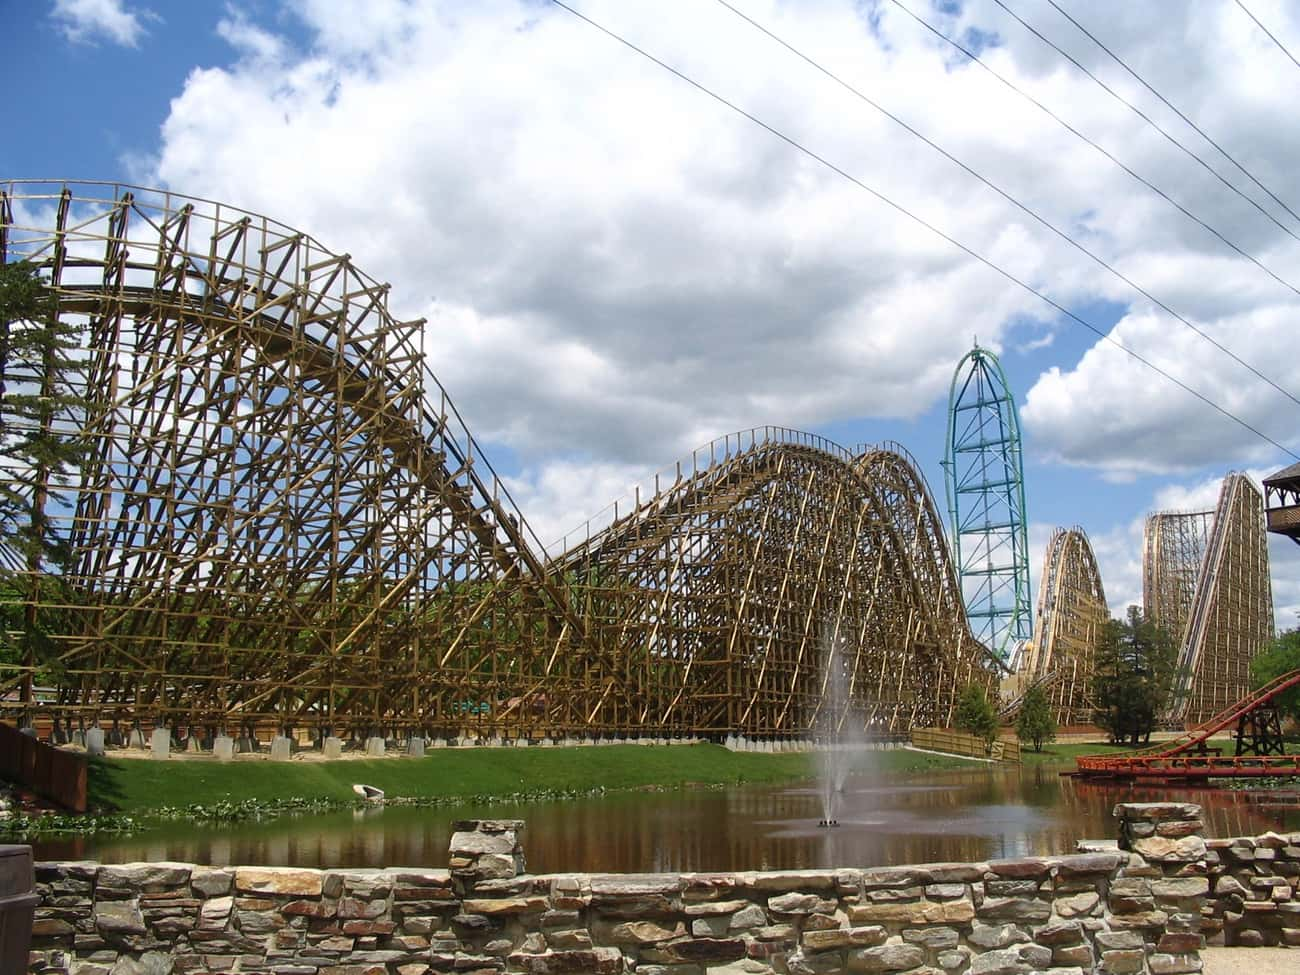 El Toro is listed (or ranked) 4 on the list The Best Roller Coasters in the World